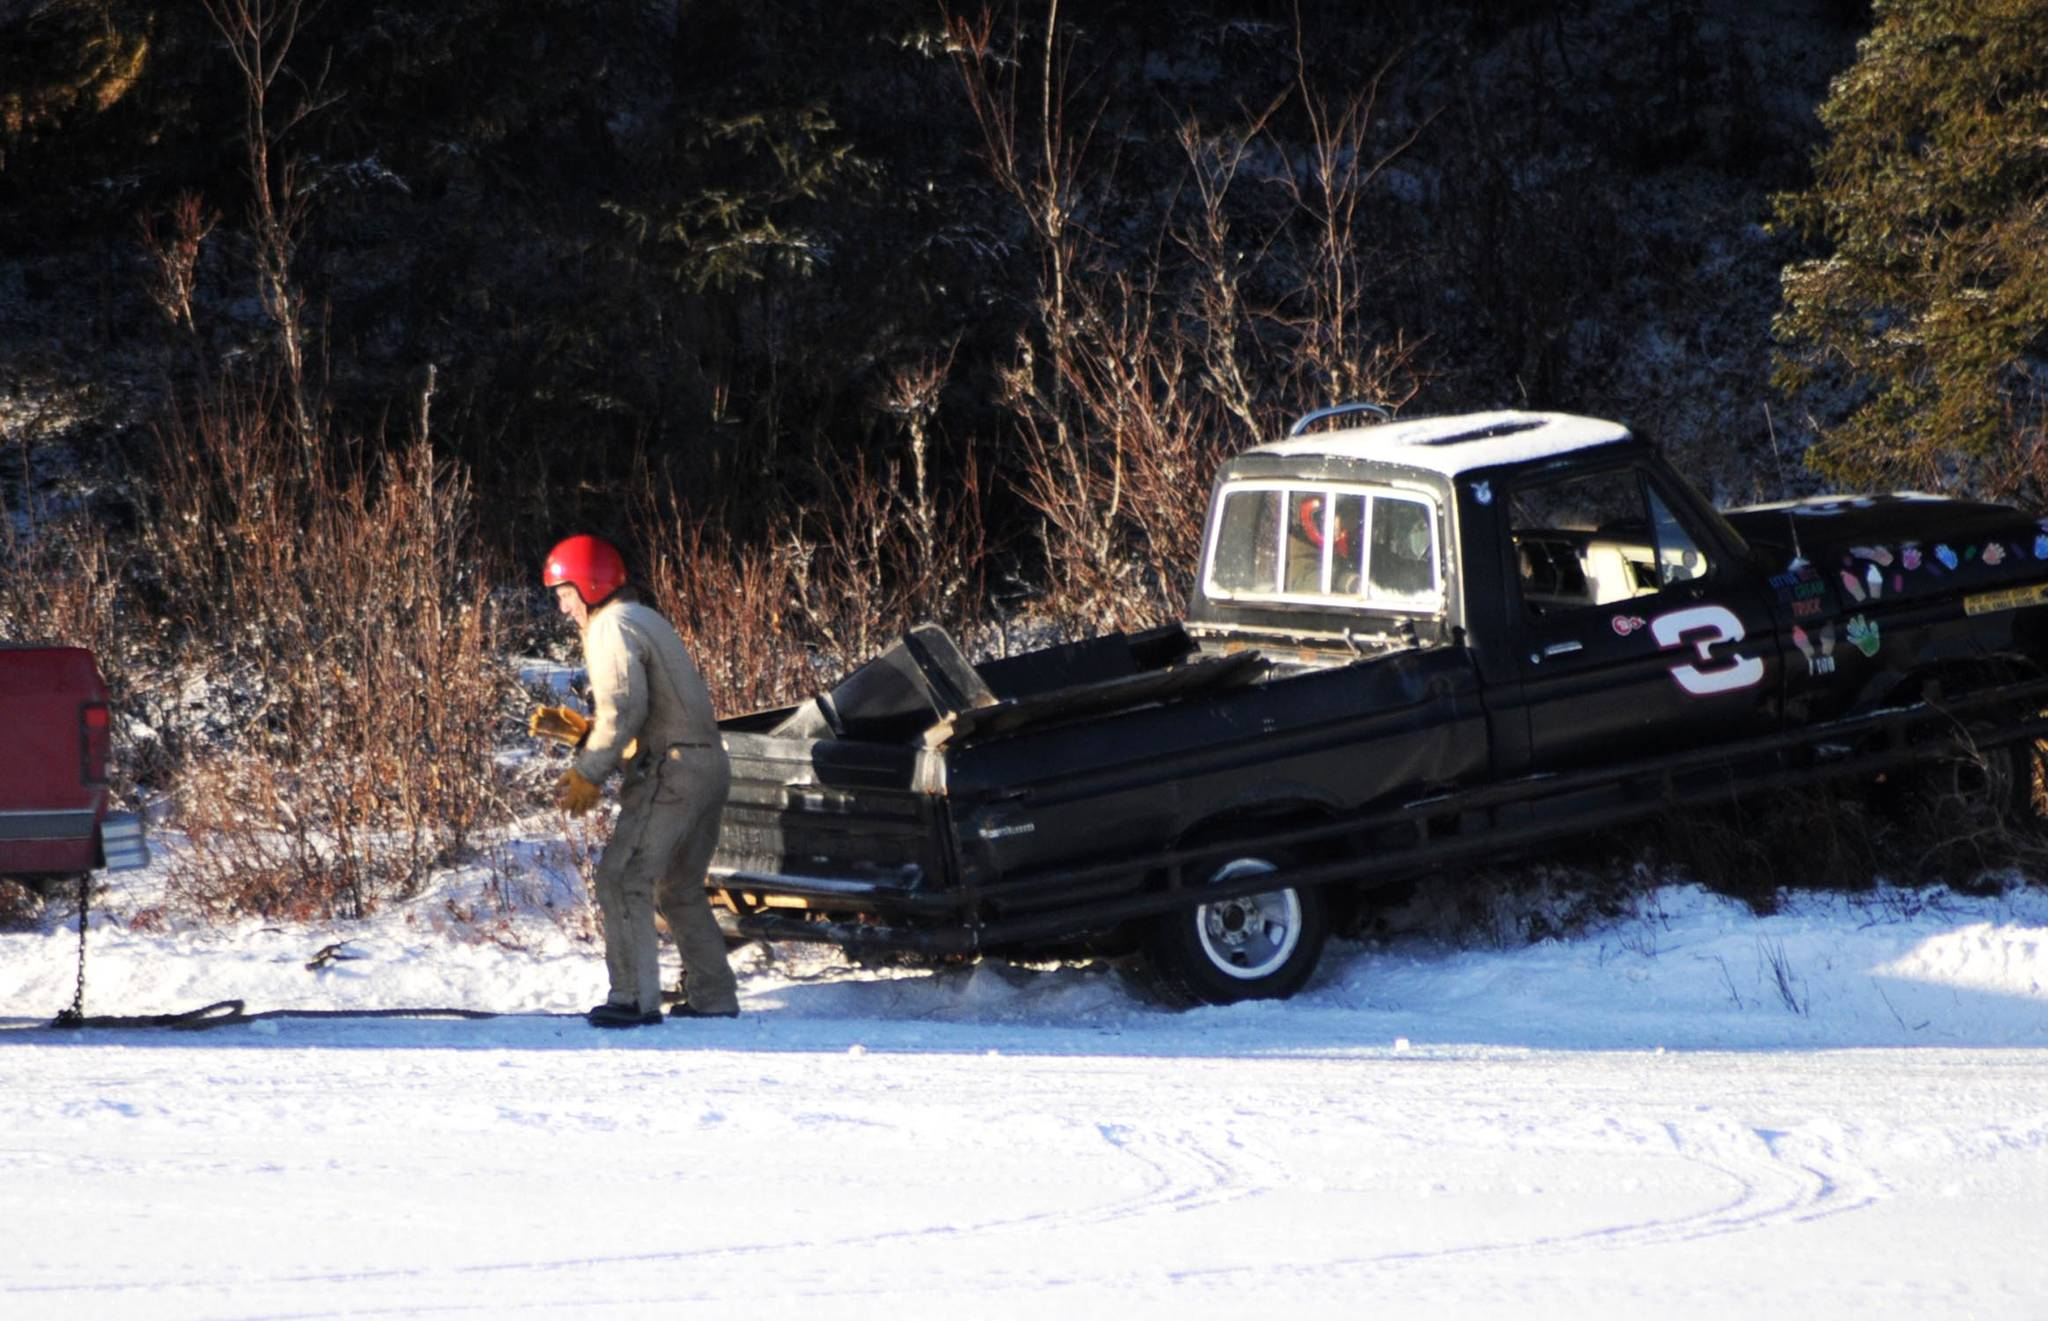 A tow truck prepares to pull a racecar driver back onto the ice track atop a frozen lake at the Decanter Inn on Sunday, Jan. 22, 2018 in Kasilof, Alaska. Every Sunday in the winter, the Decanter Inn hosts Peninsula Ice Racing events for drivers to try their hand at the frozen track on the shallow lake at the bottom of the hill behind the inn. The racers can use studded tires on their front wheels only and equip the sides of their vehicles with bumpers as other vehicles are likely to slip and slide into them. Spinning out is common. A tow truck waits on the sidelines to retrieve drivers who get stuck on the berms alongside the track. Fans gathered Sunday despite the cold to cheer the racers on. The men race in the morning, followed by the women's races in the afternoon. (Photo by Elizabeth Earl/Peninsula Clarion)